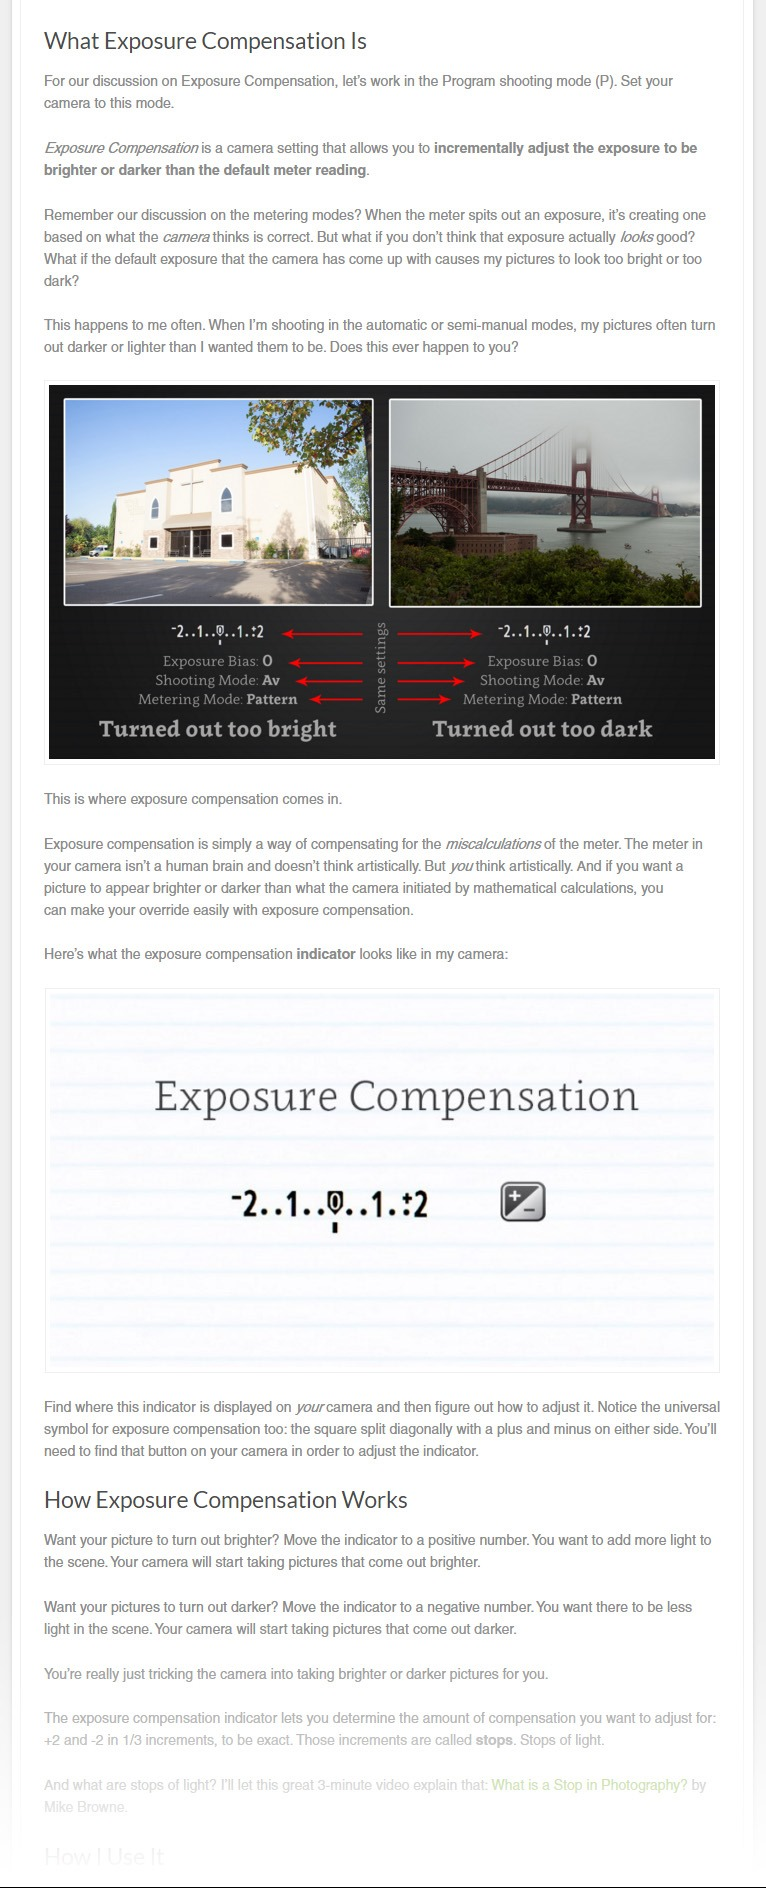 Do You Know How to Use Exposure Compensation?